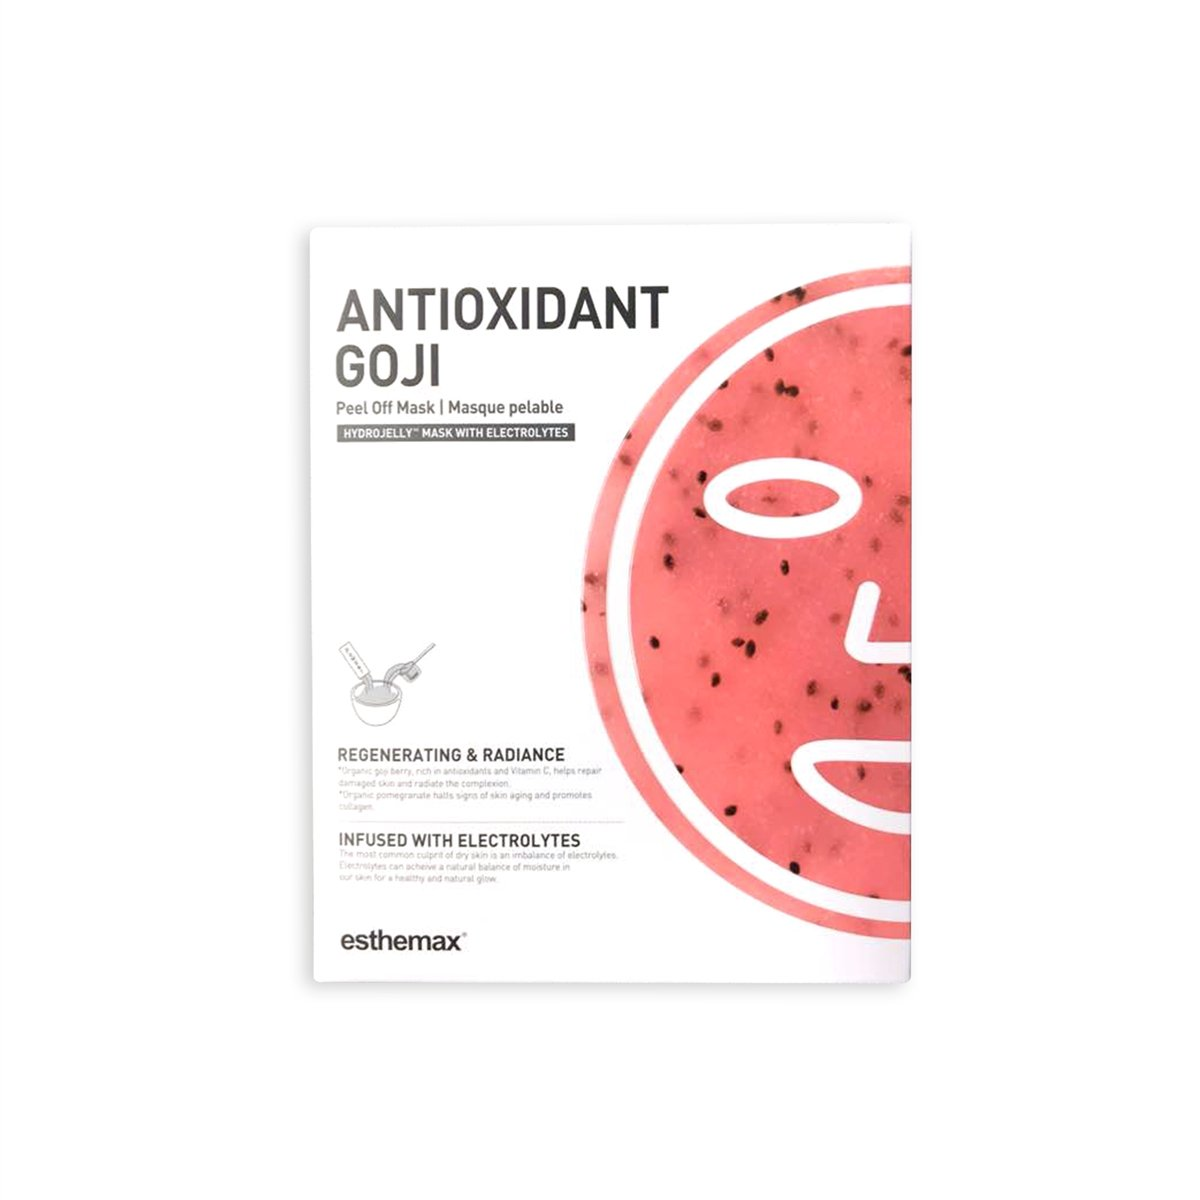 Antioxidant Goji Hydro Jelly Mask packaging